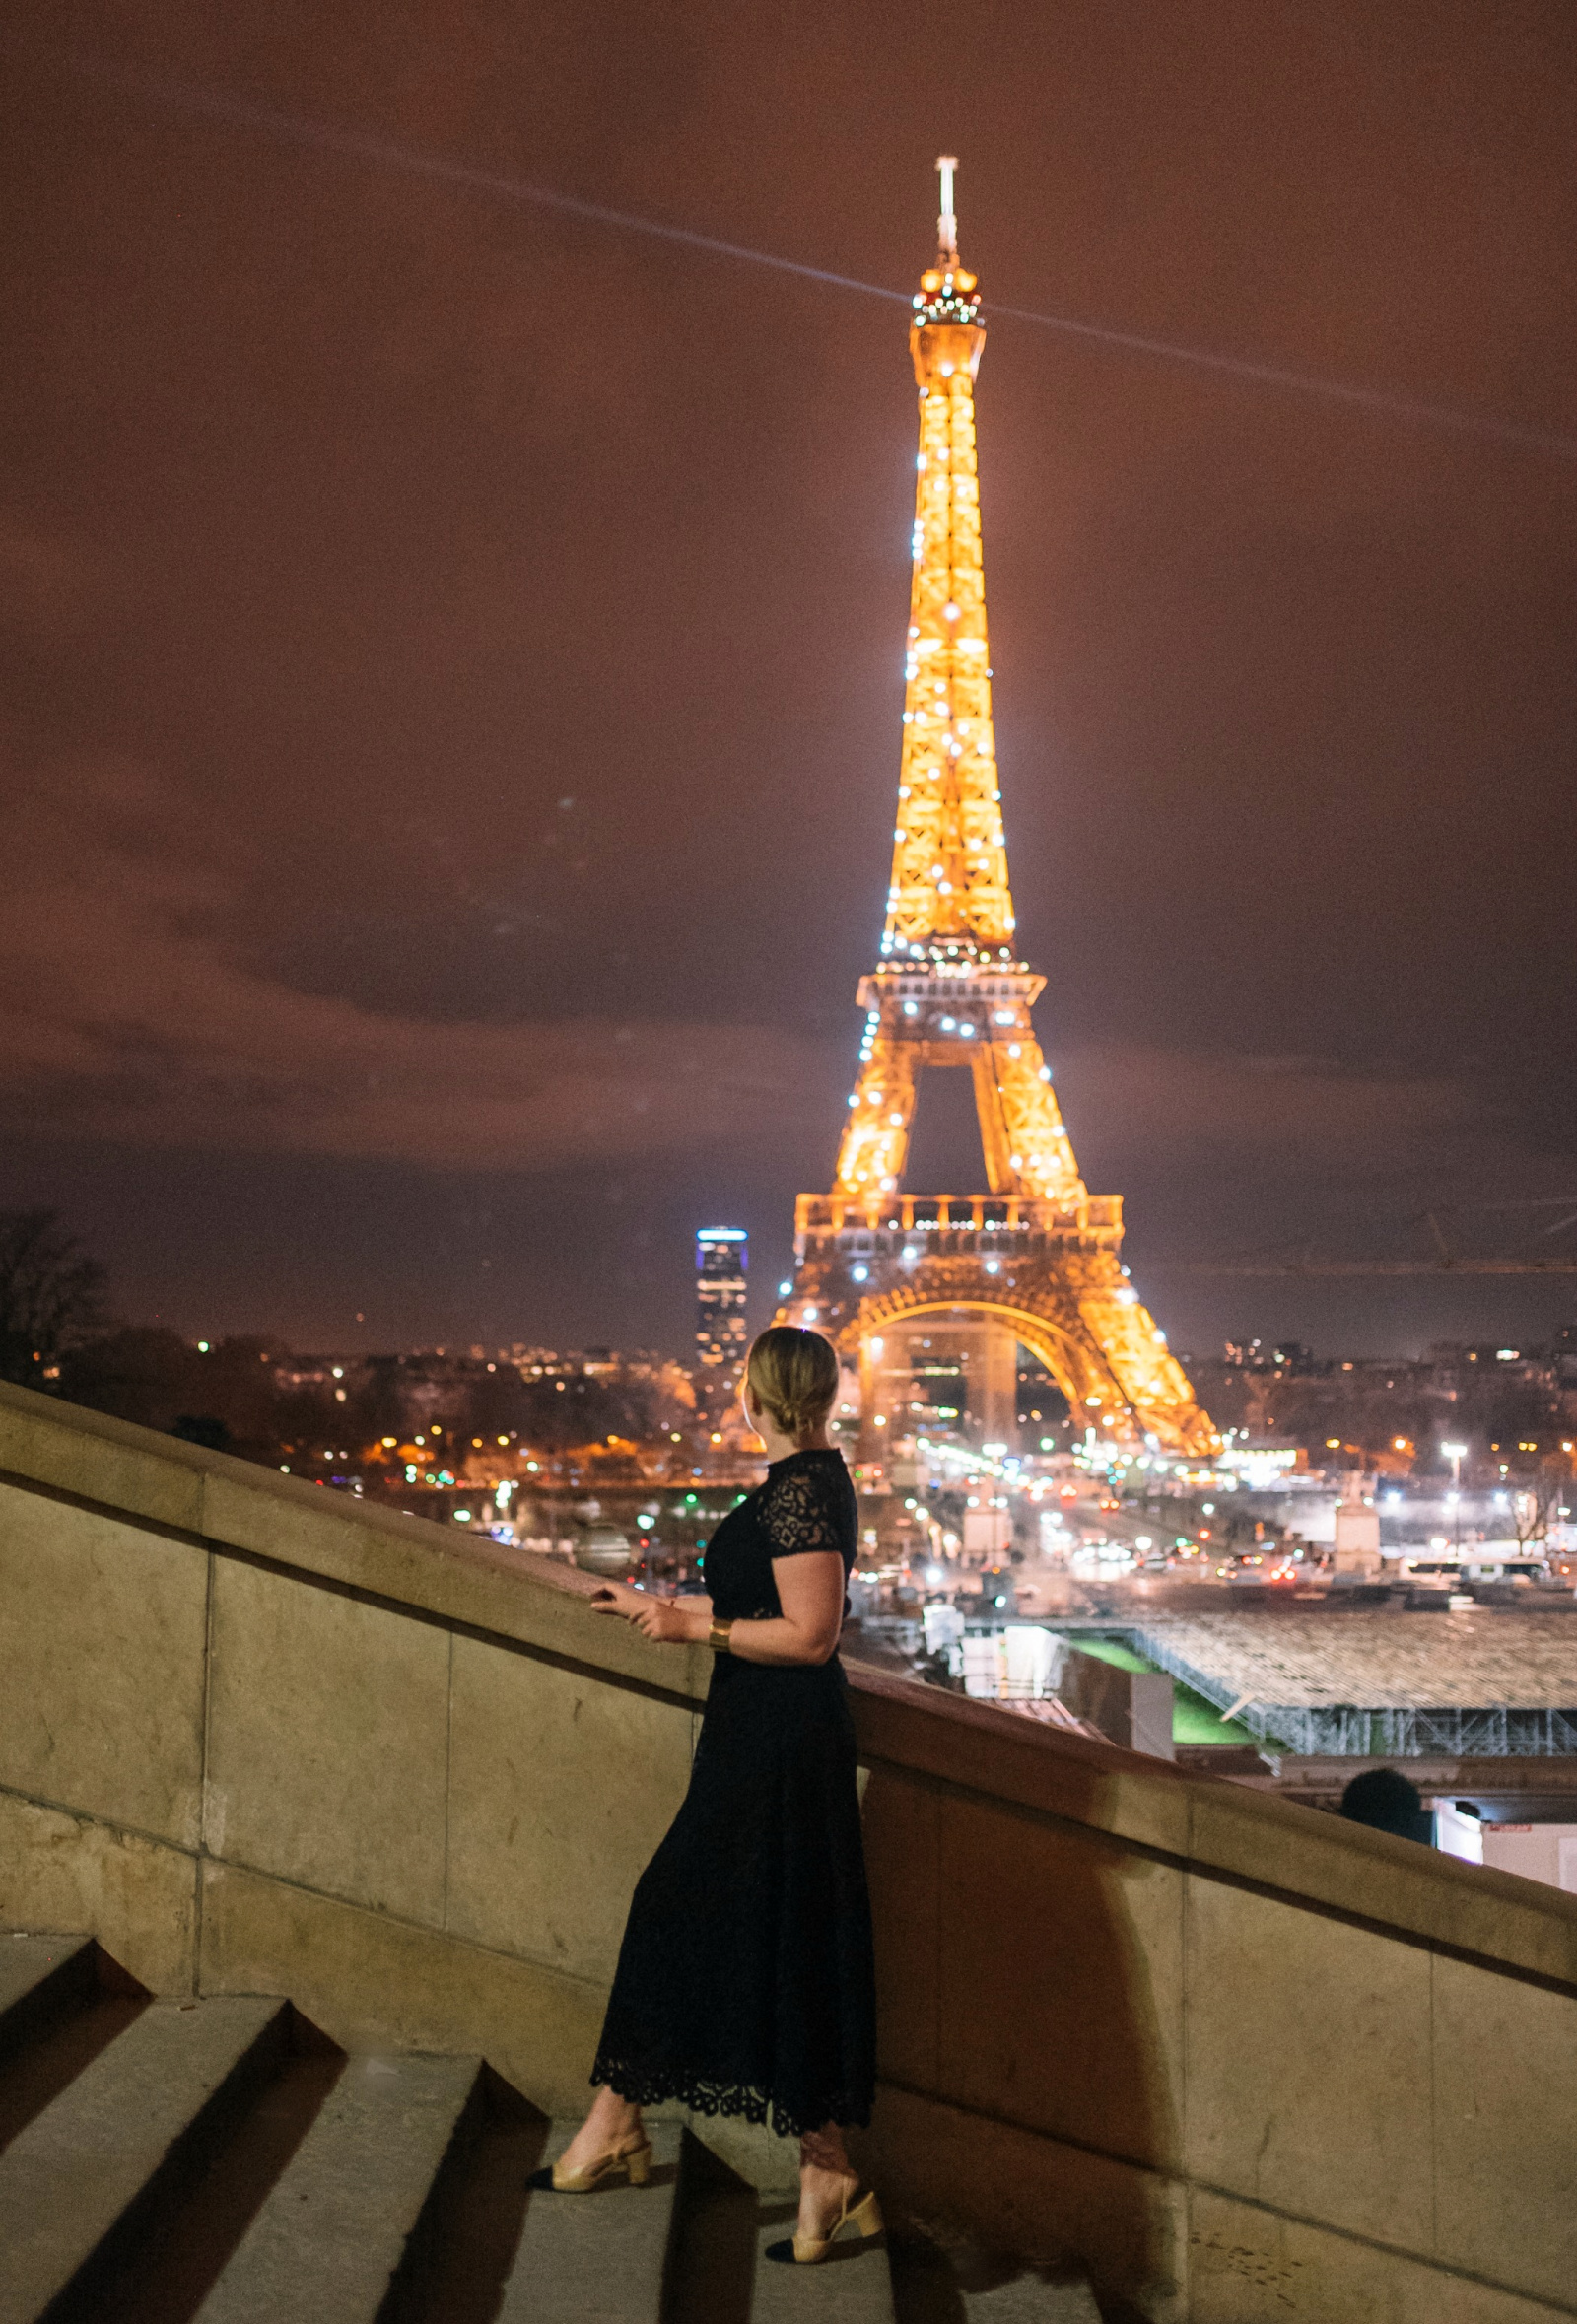 Best Places to View the Eiffel Tower